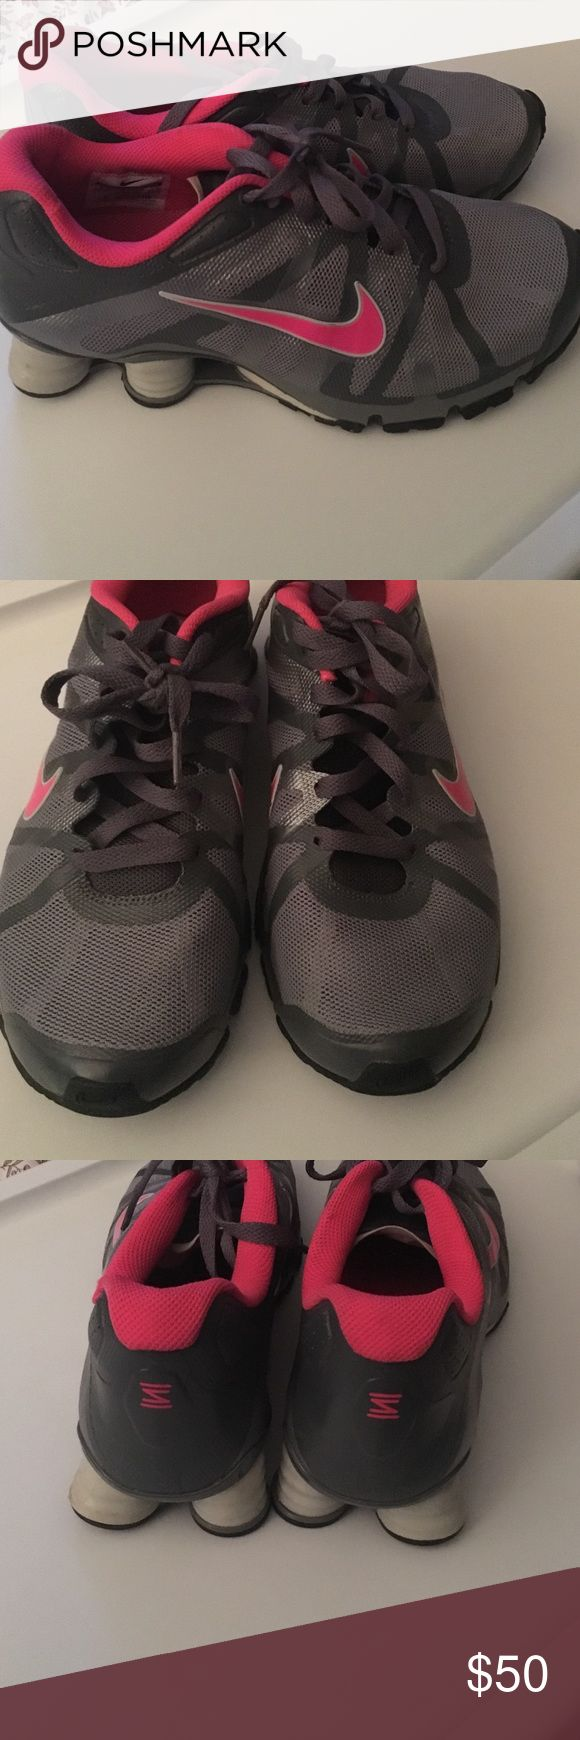 Gently used Nike shocks size 8.5 grey/pink Gently used Nike shocks size 8.5 grey and pink, only worn a handful of times Nike Shoes Sneakers